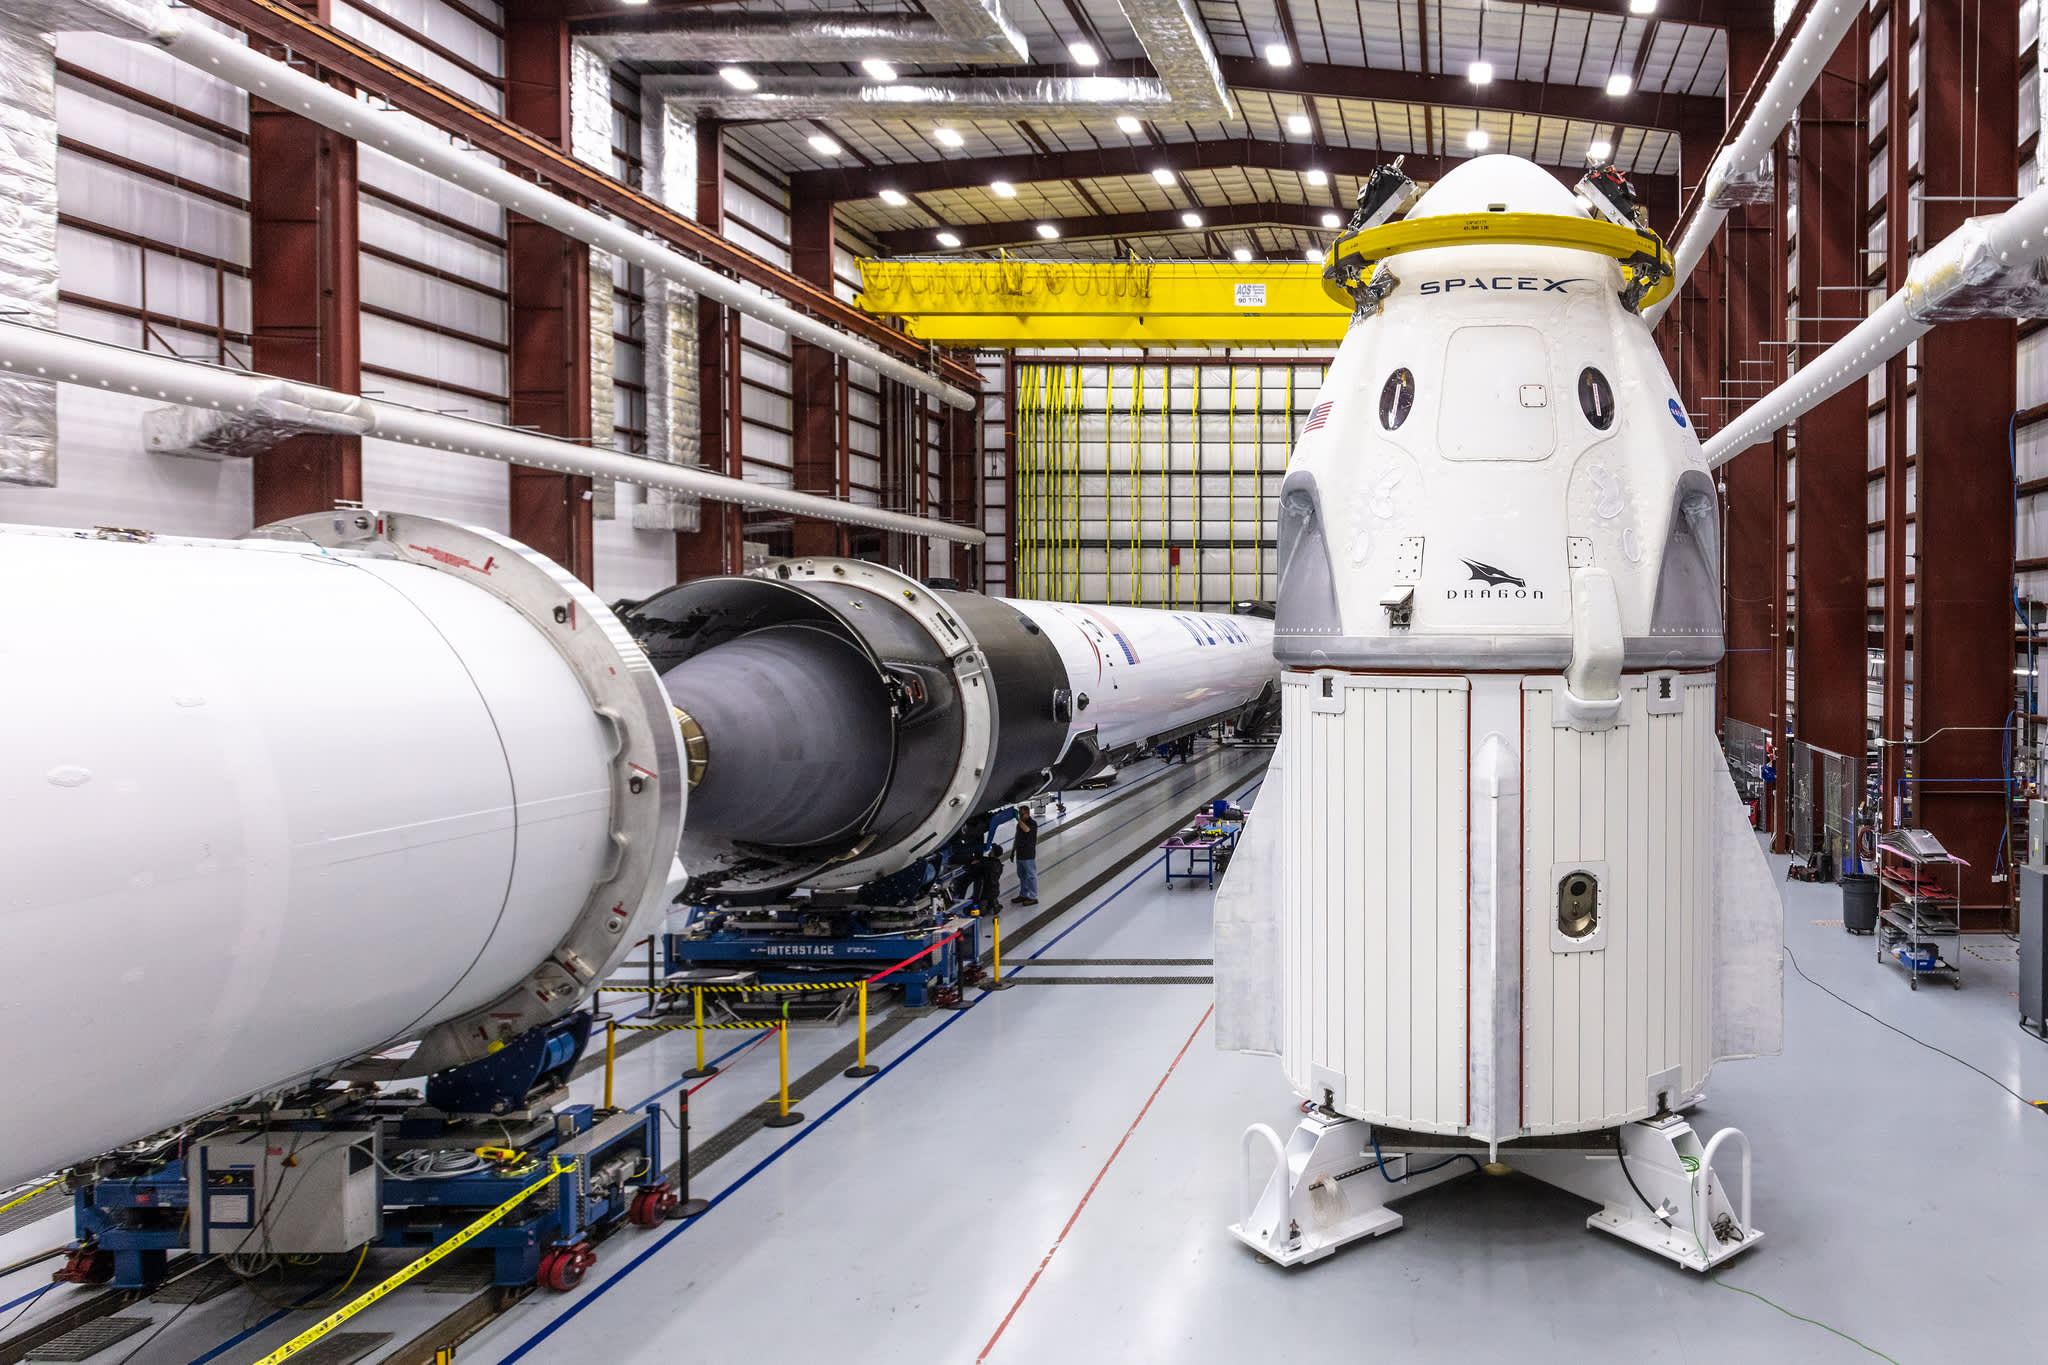 A SpaceX capsule built to fly humans was 'destroyed' during testing in Florida, company VP says